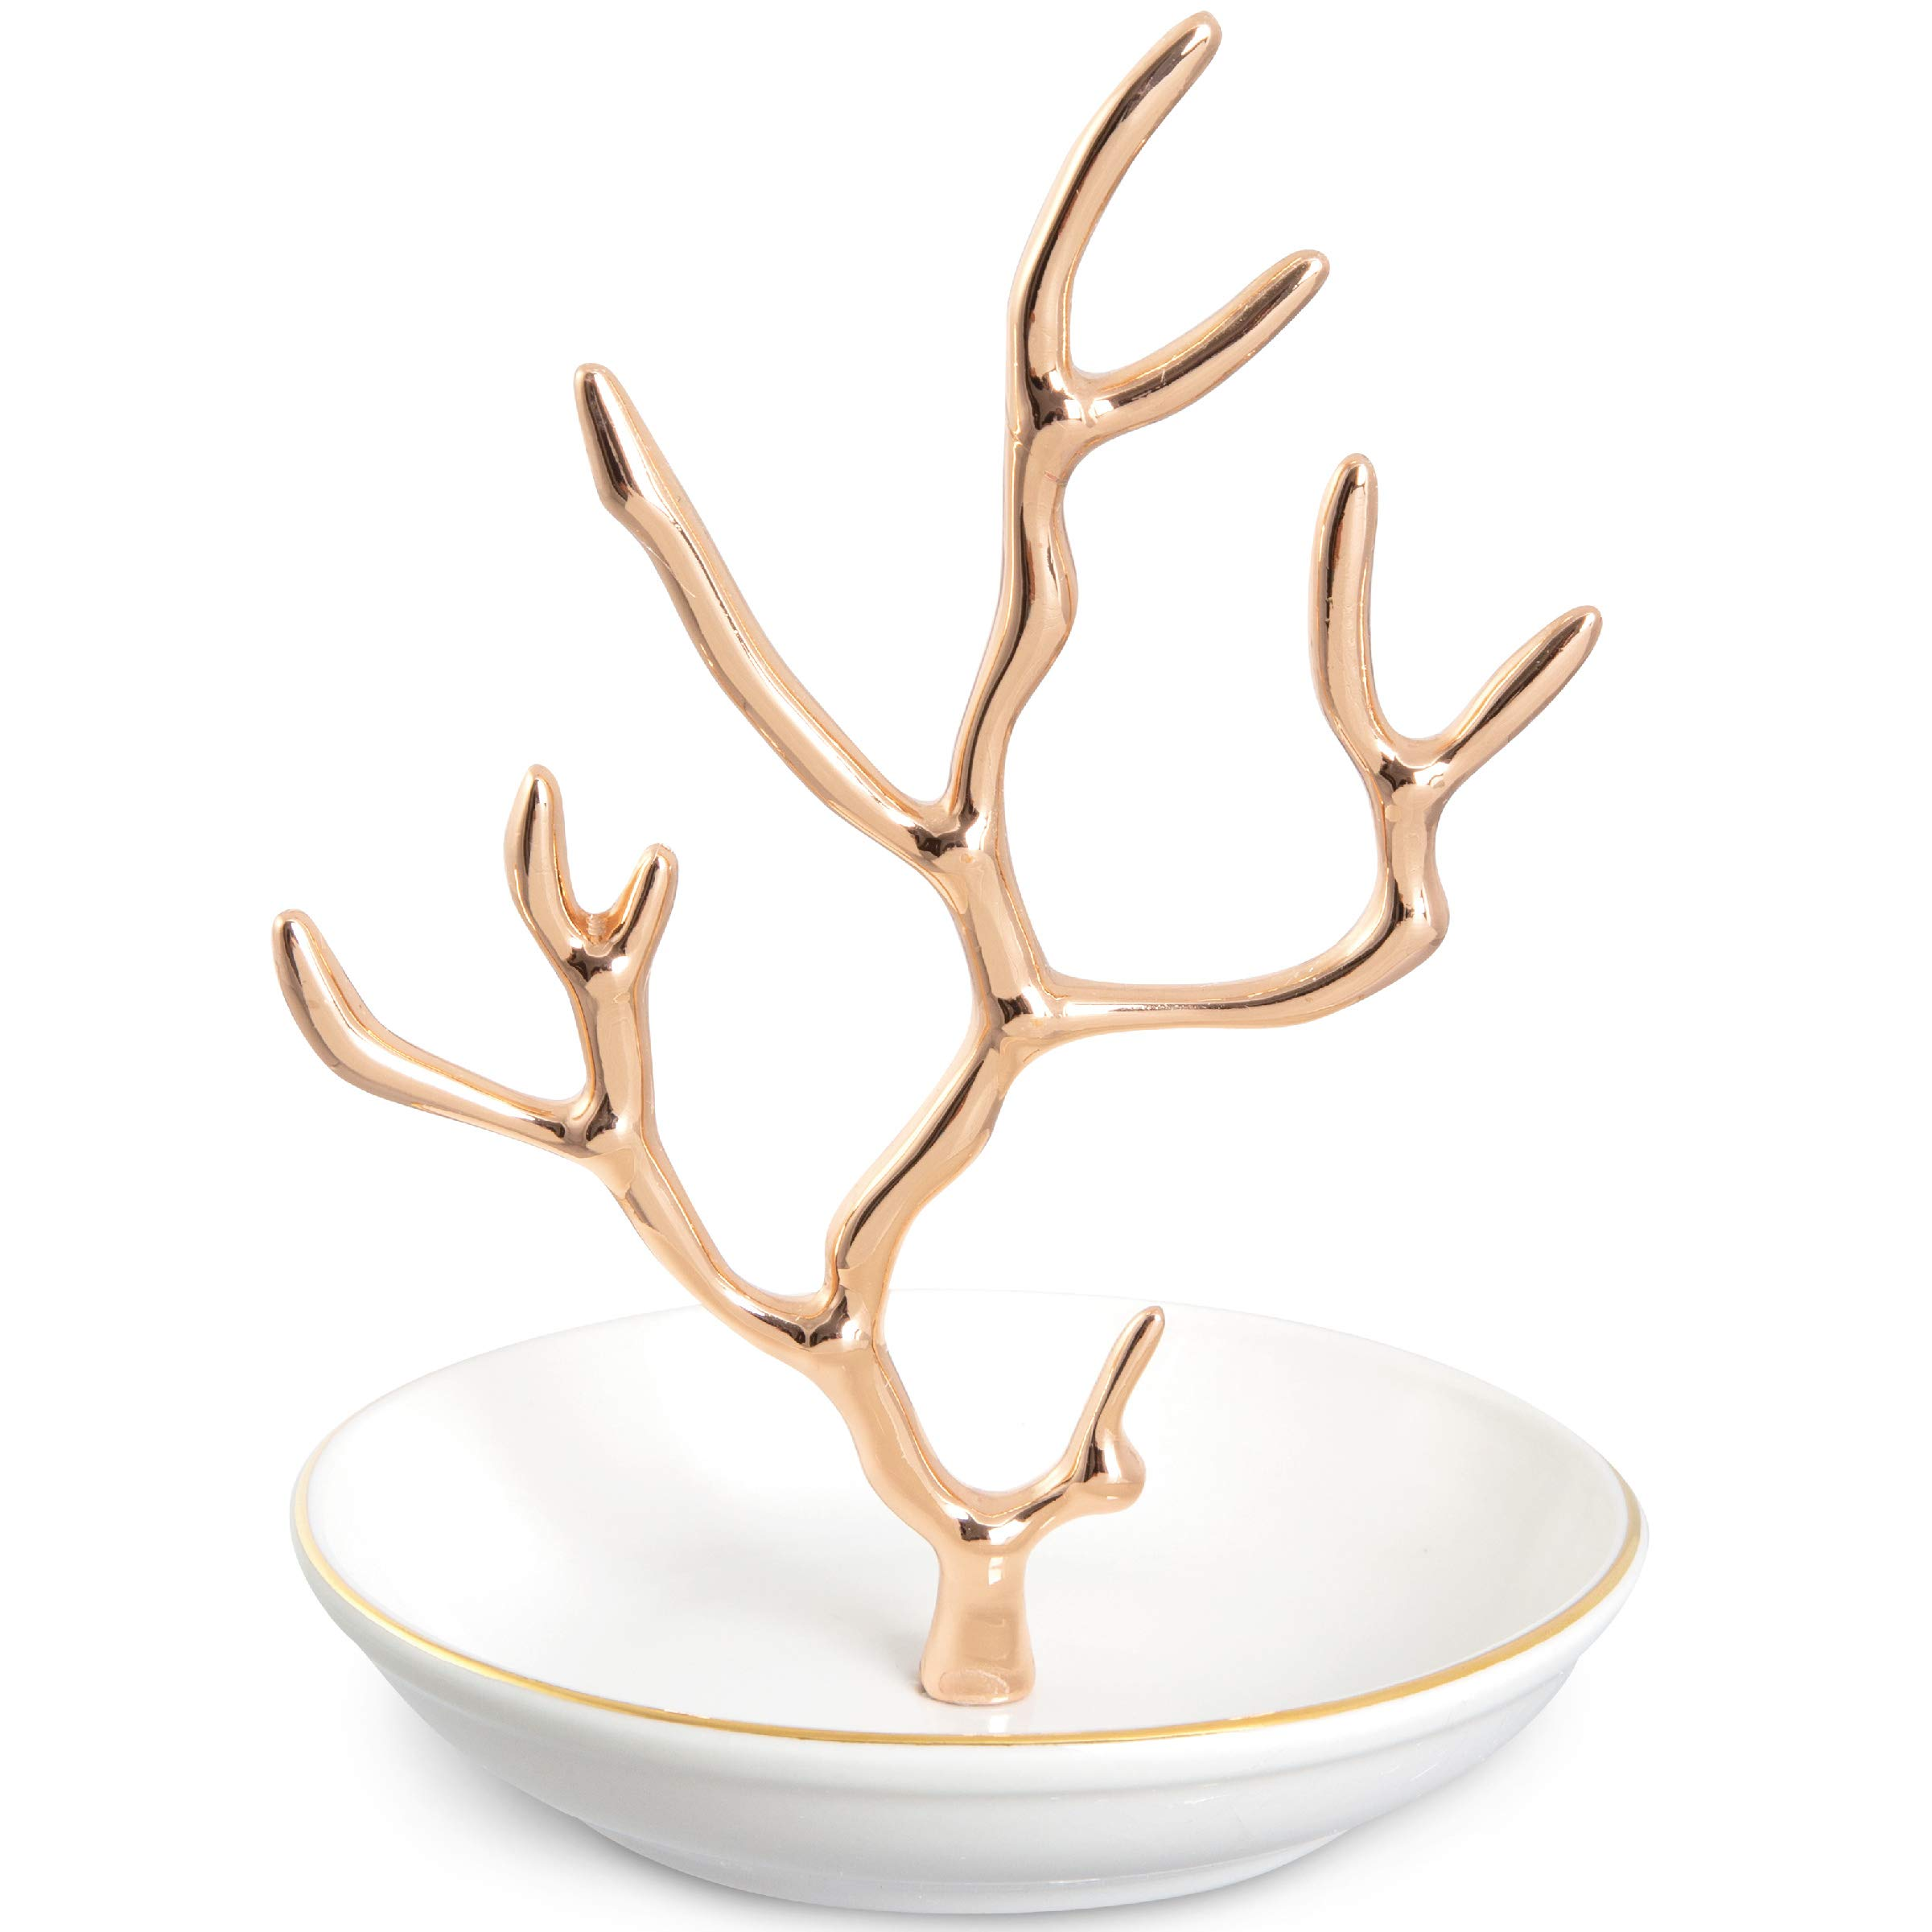 Laura Ashley Jewelry Organizer Necklace and Earring Holder for Women, Rose Gold Coral Tree Hanger Display Stand with White Bowl Tray Base, Stores Trinkets and Rings